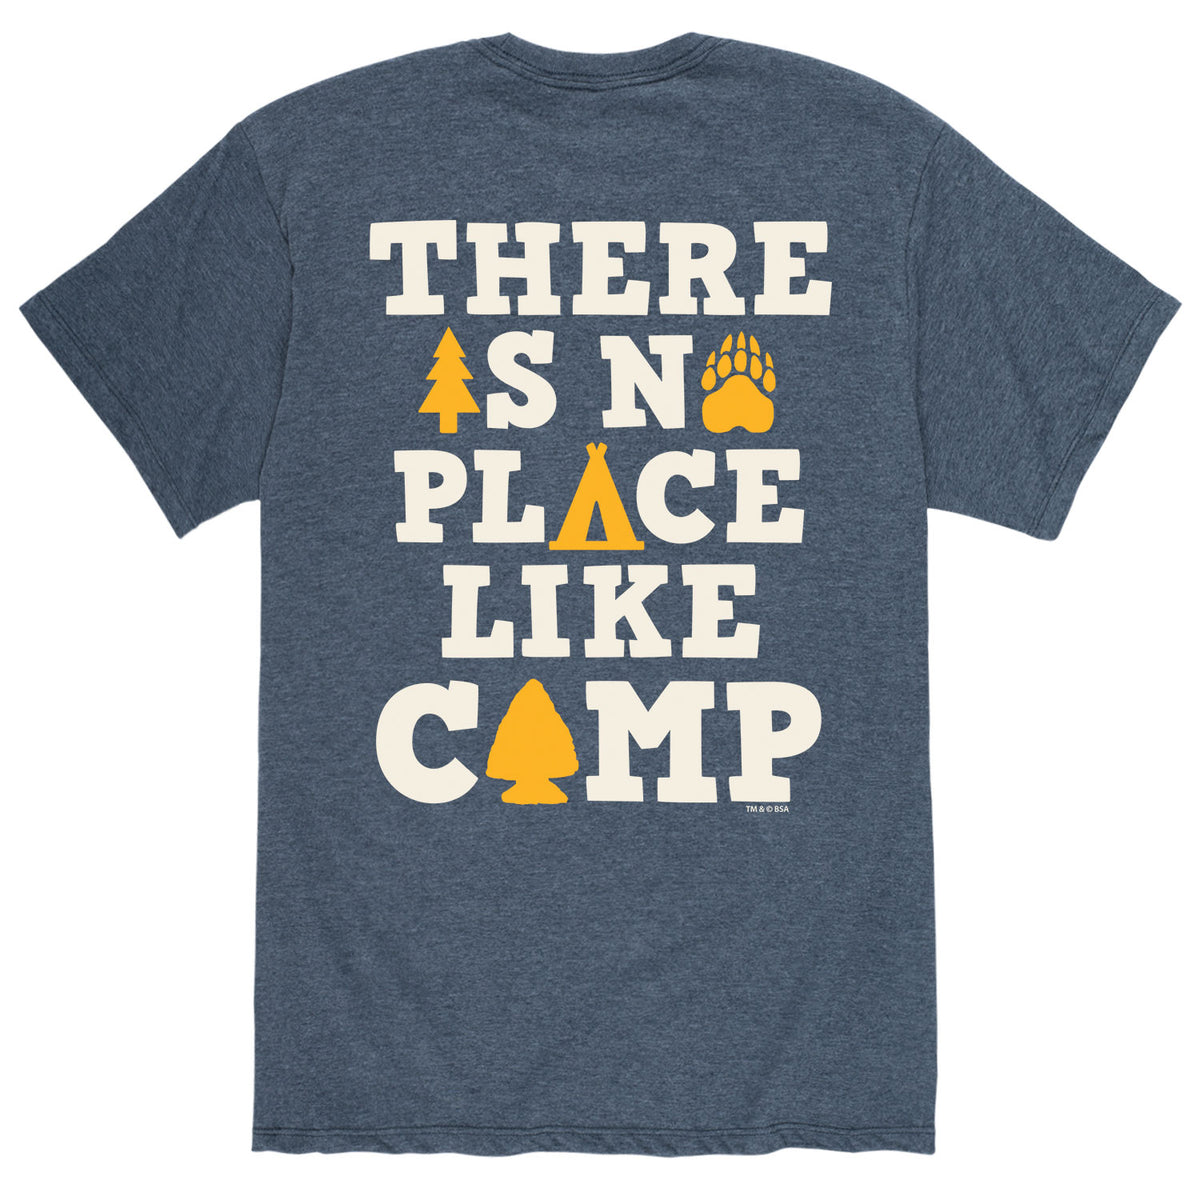 No Place Like Camp - Men's Short Sleeve T-Shirt